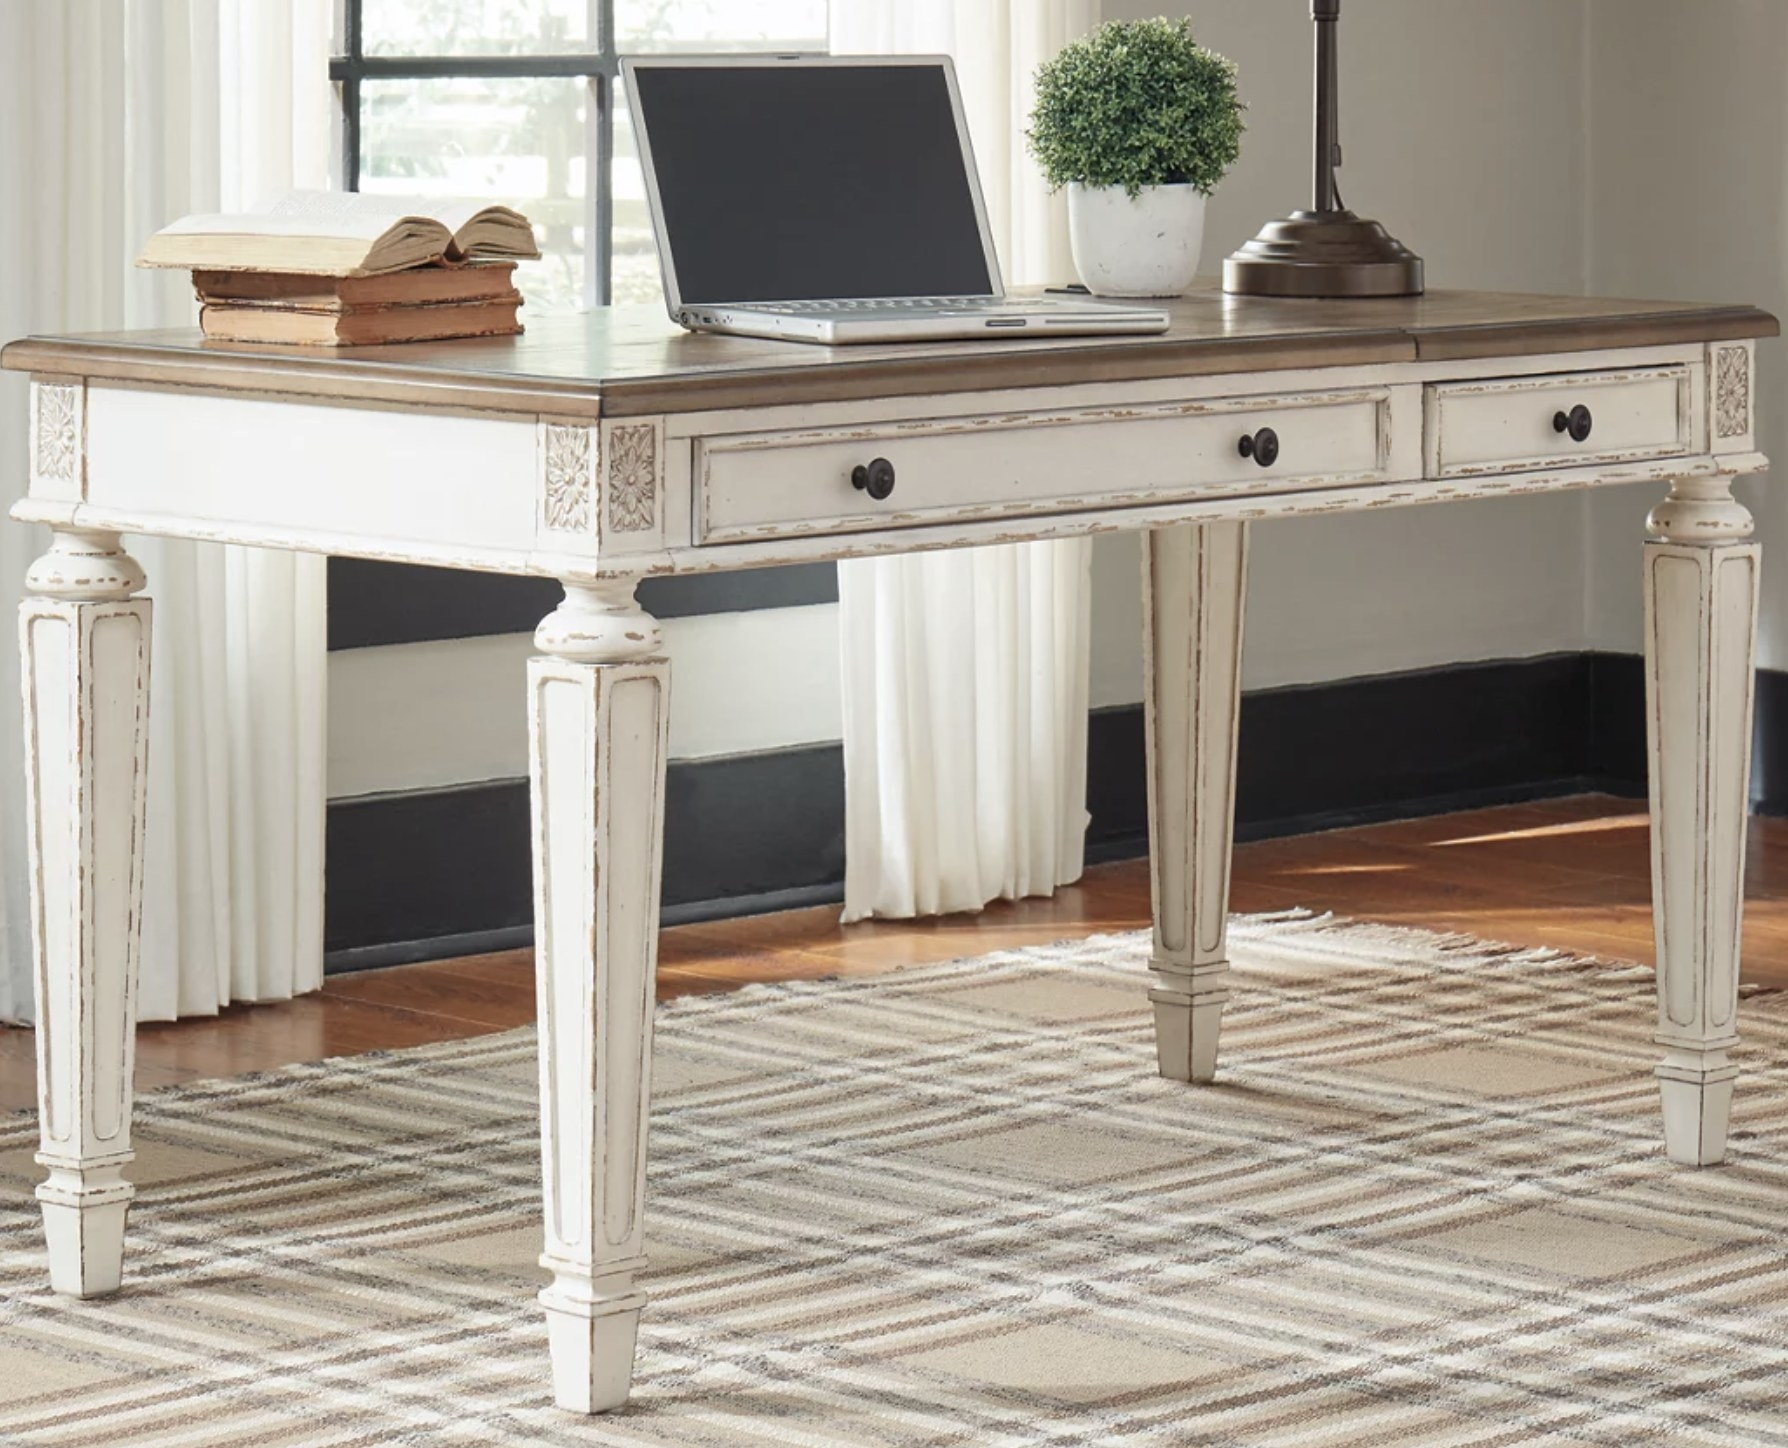 The lift top desk in white weathered wood